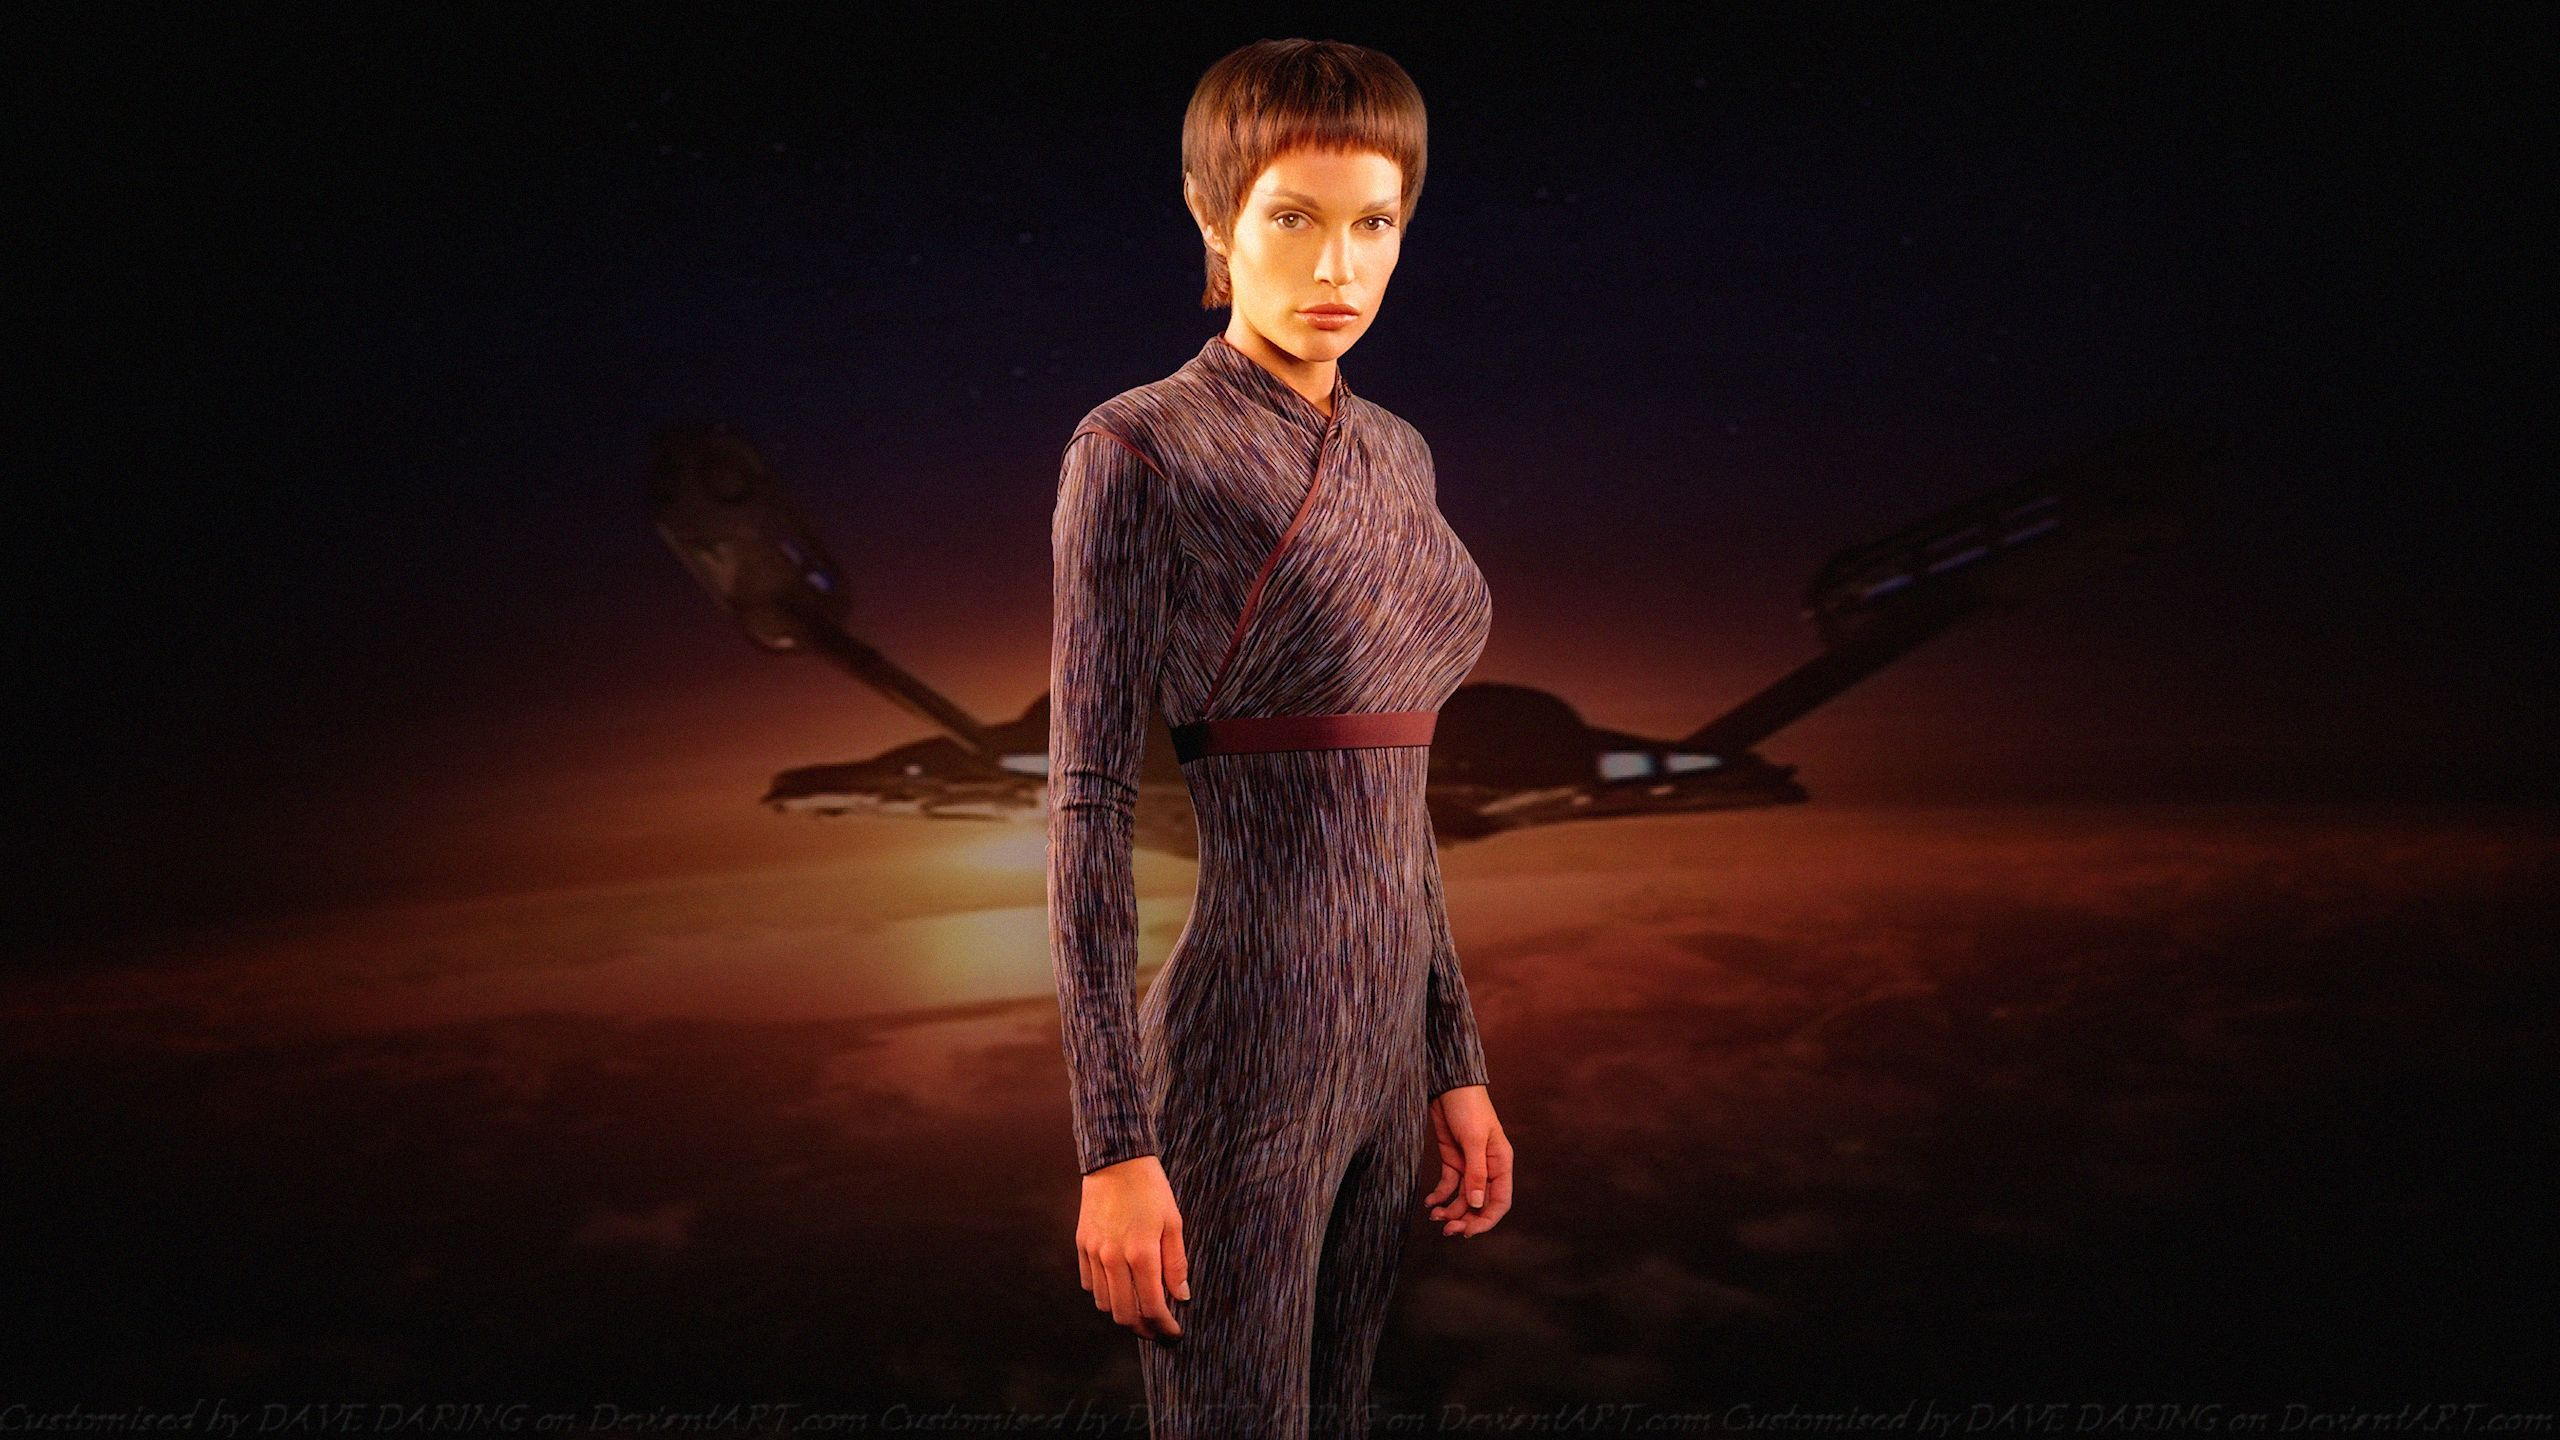 TV-program Star Trek: Enterprise Jolene Blalock Bakgrund